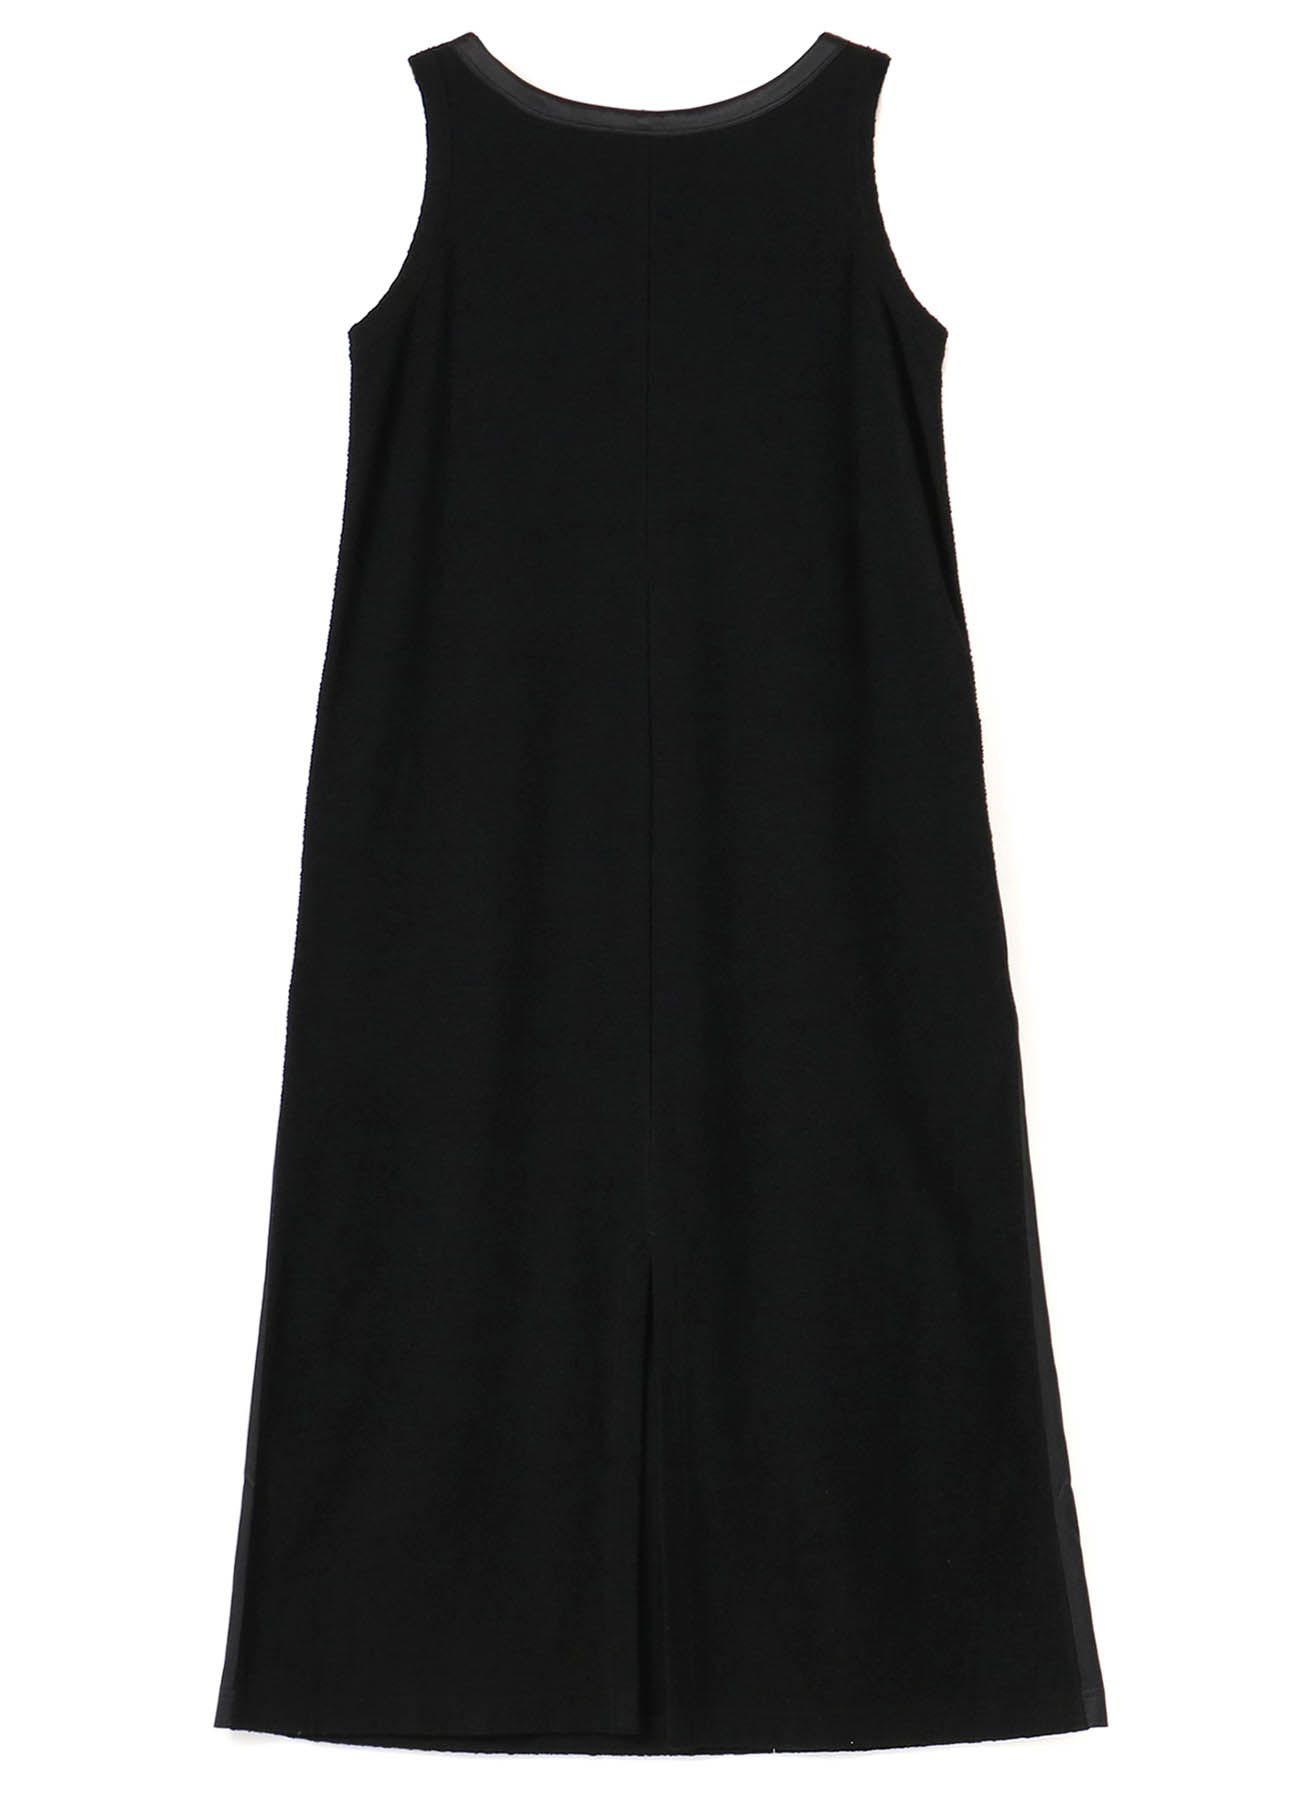 RANDOM PILE SLEEVELESS DRESS